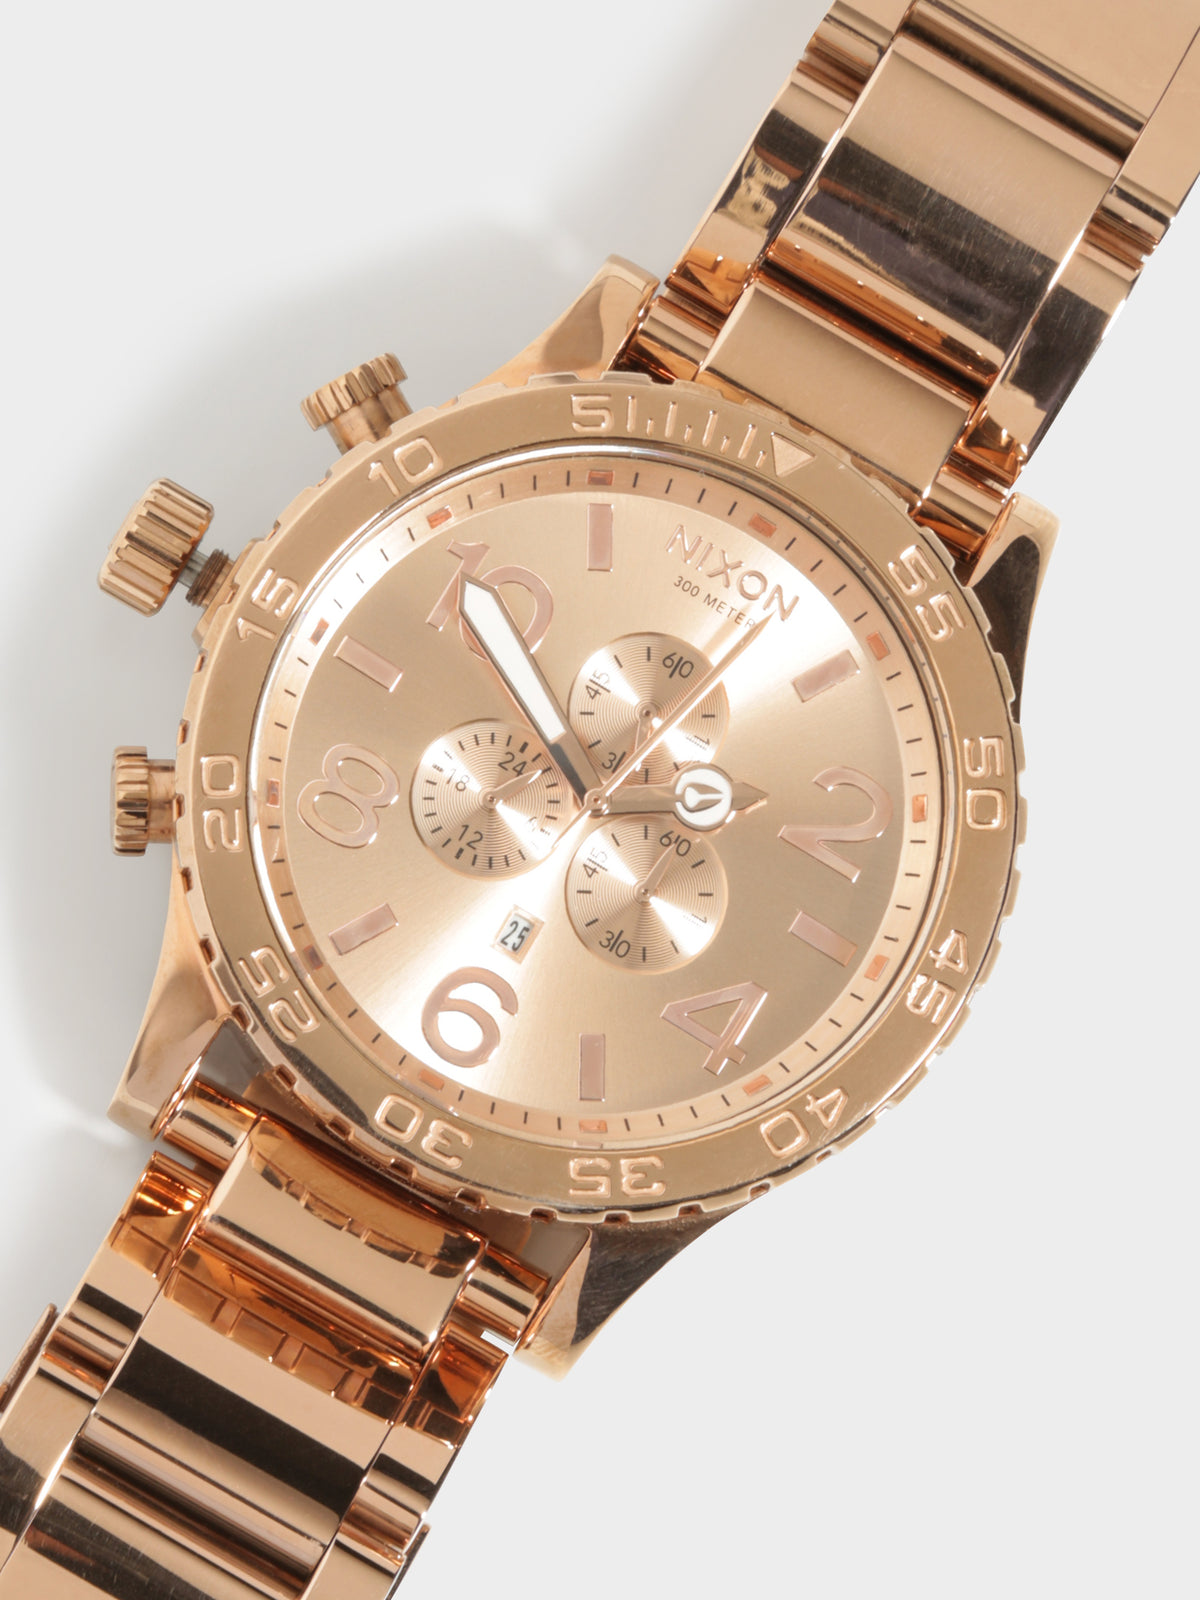 51-30 Chrono 51mm Oversized Chronograph Watch in Rose Gold